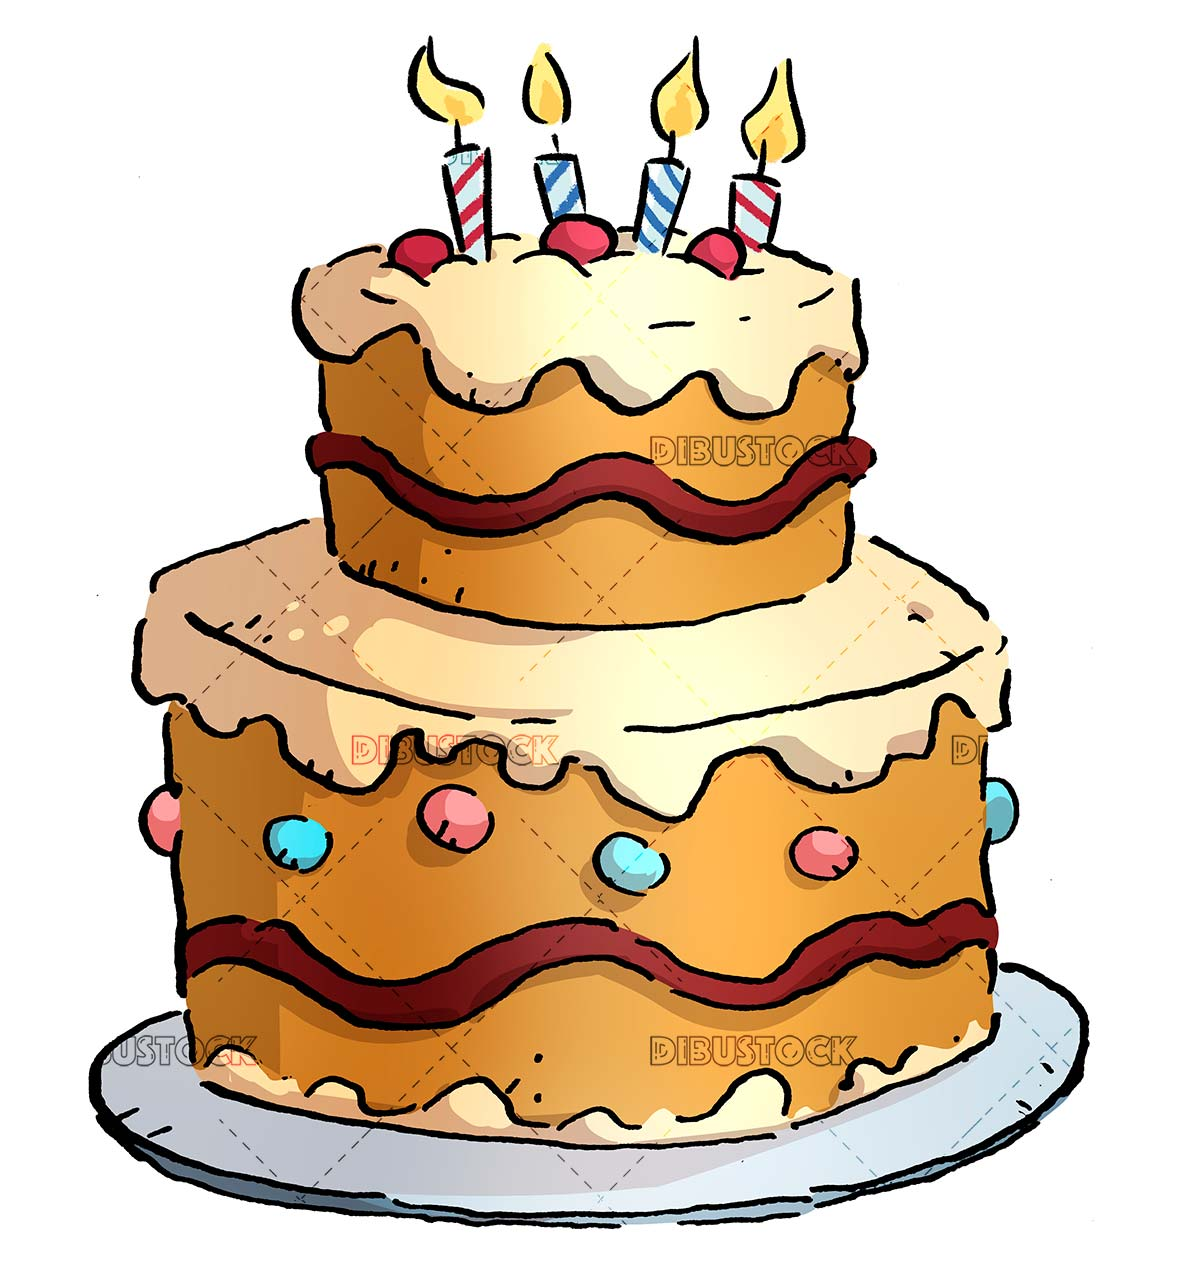 drawing of cake with burning candles